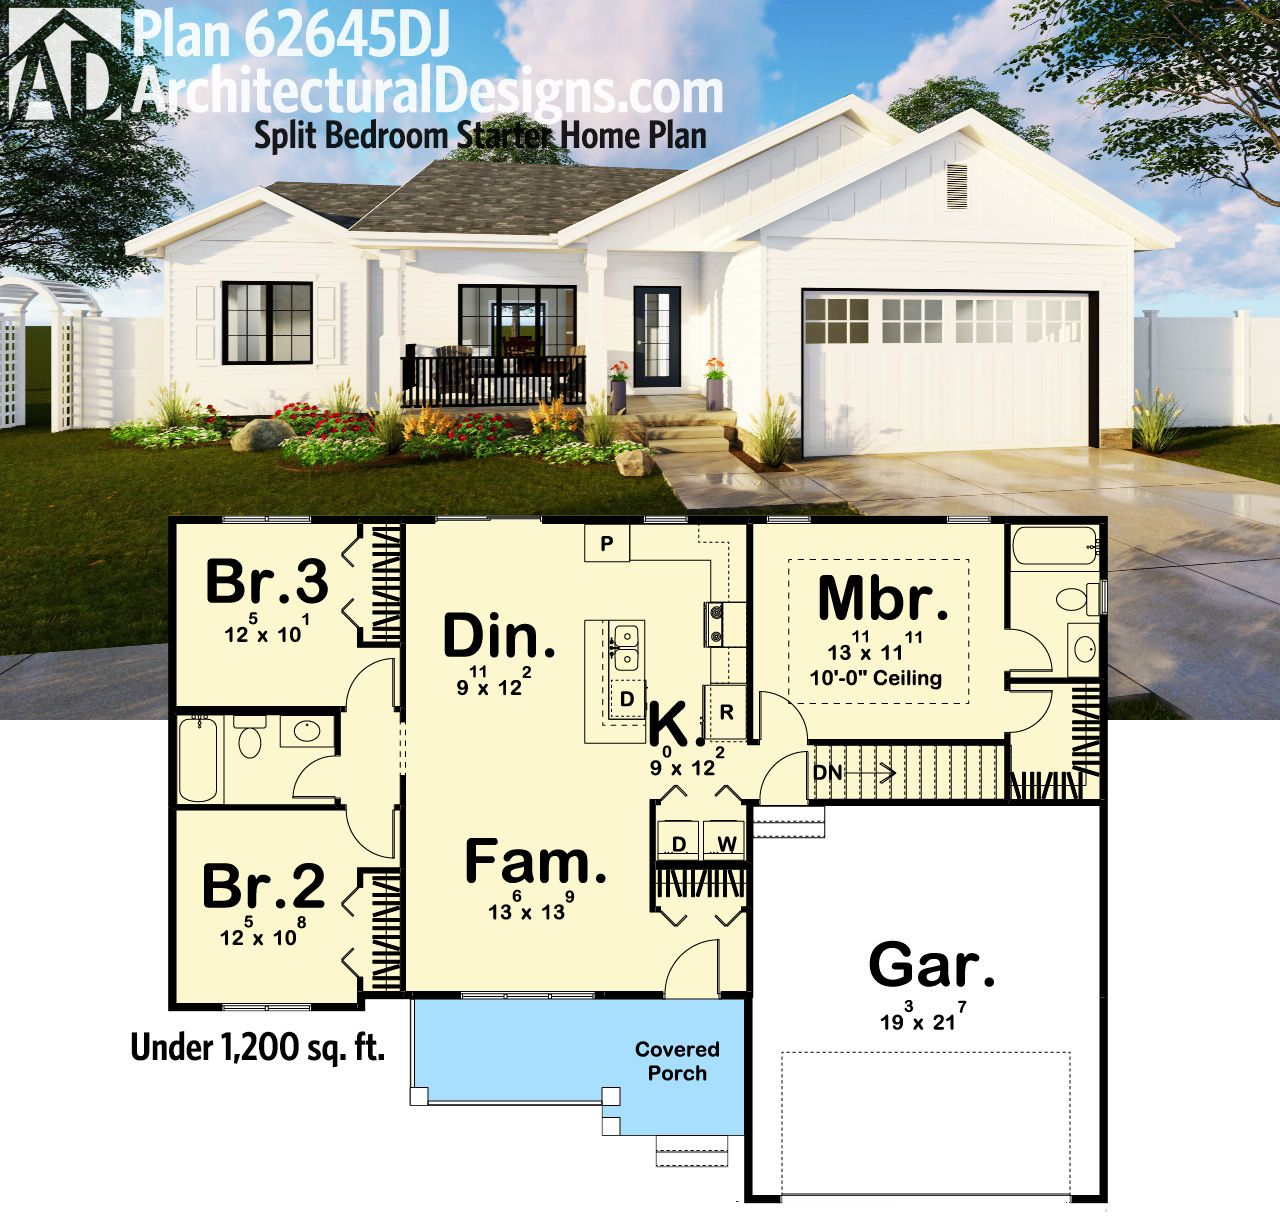 Plan 62645dj Split Bedroom Starter Home Plan Starter Home Plans House Plans Dream House Plans